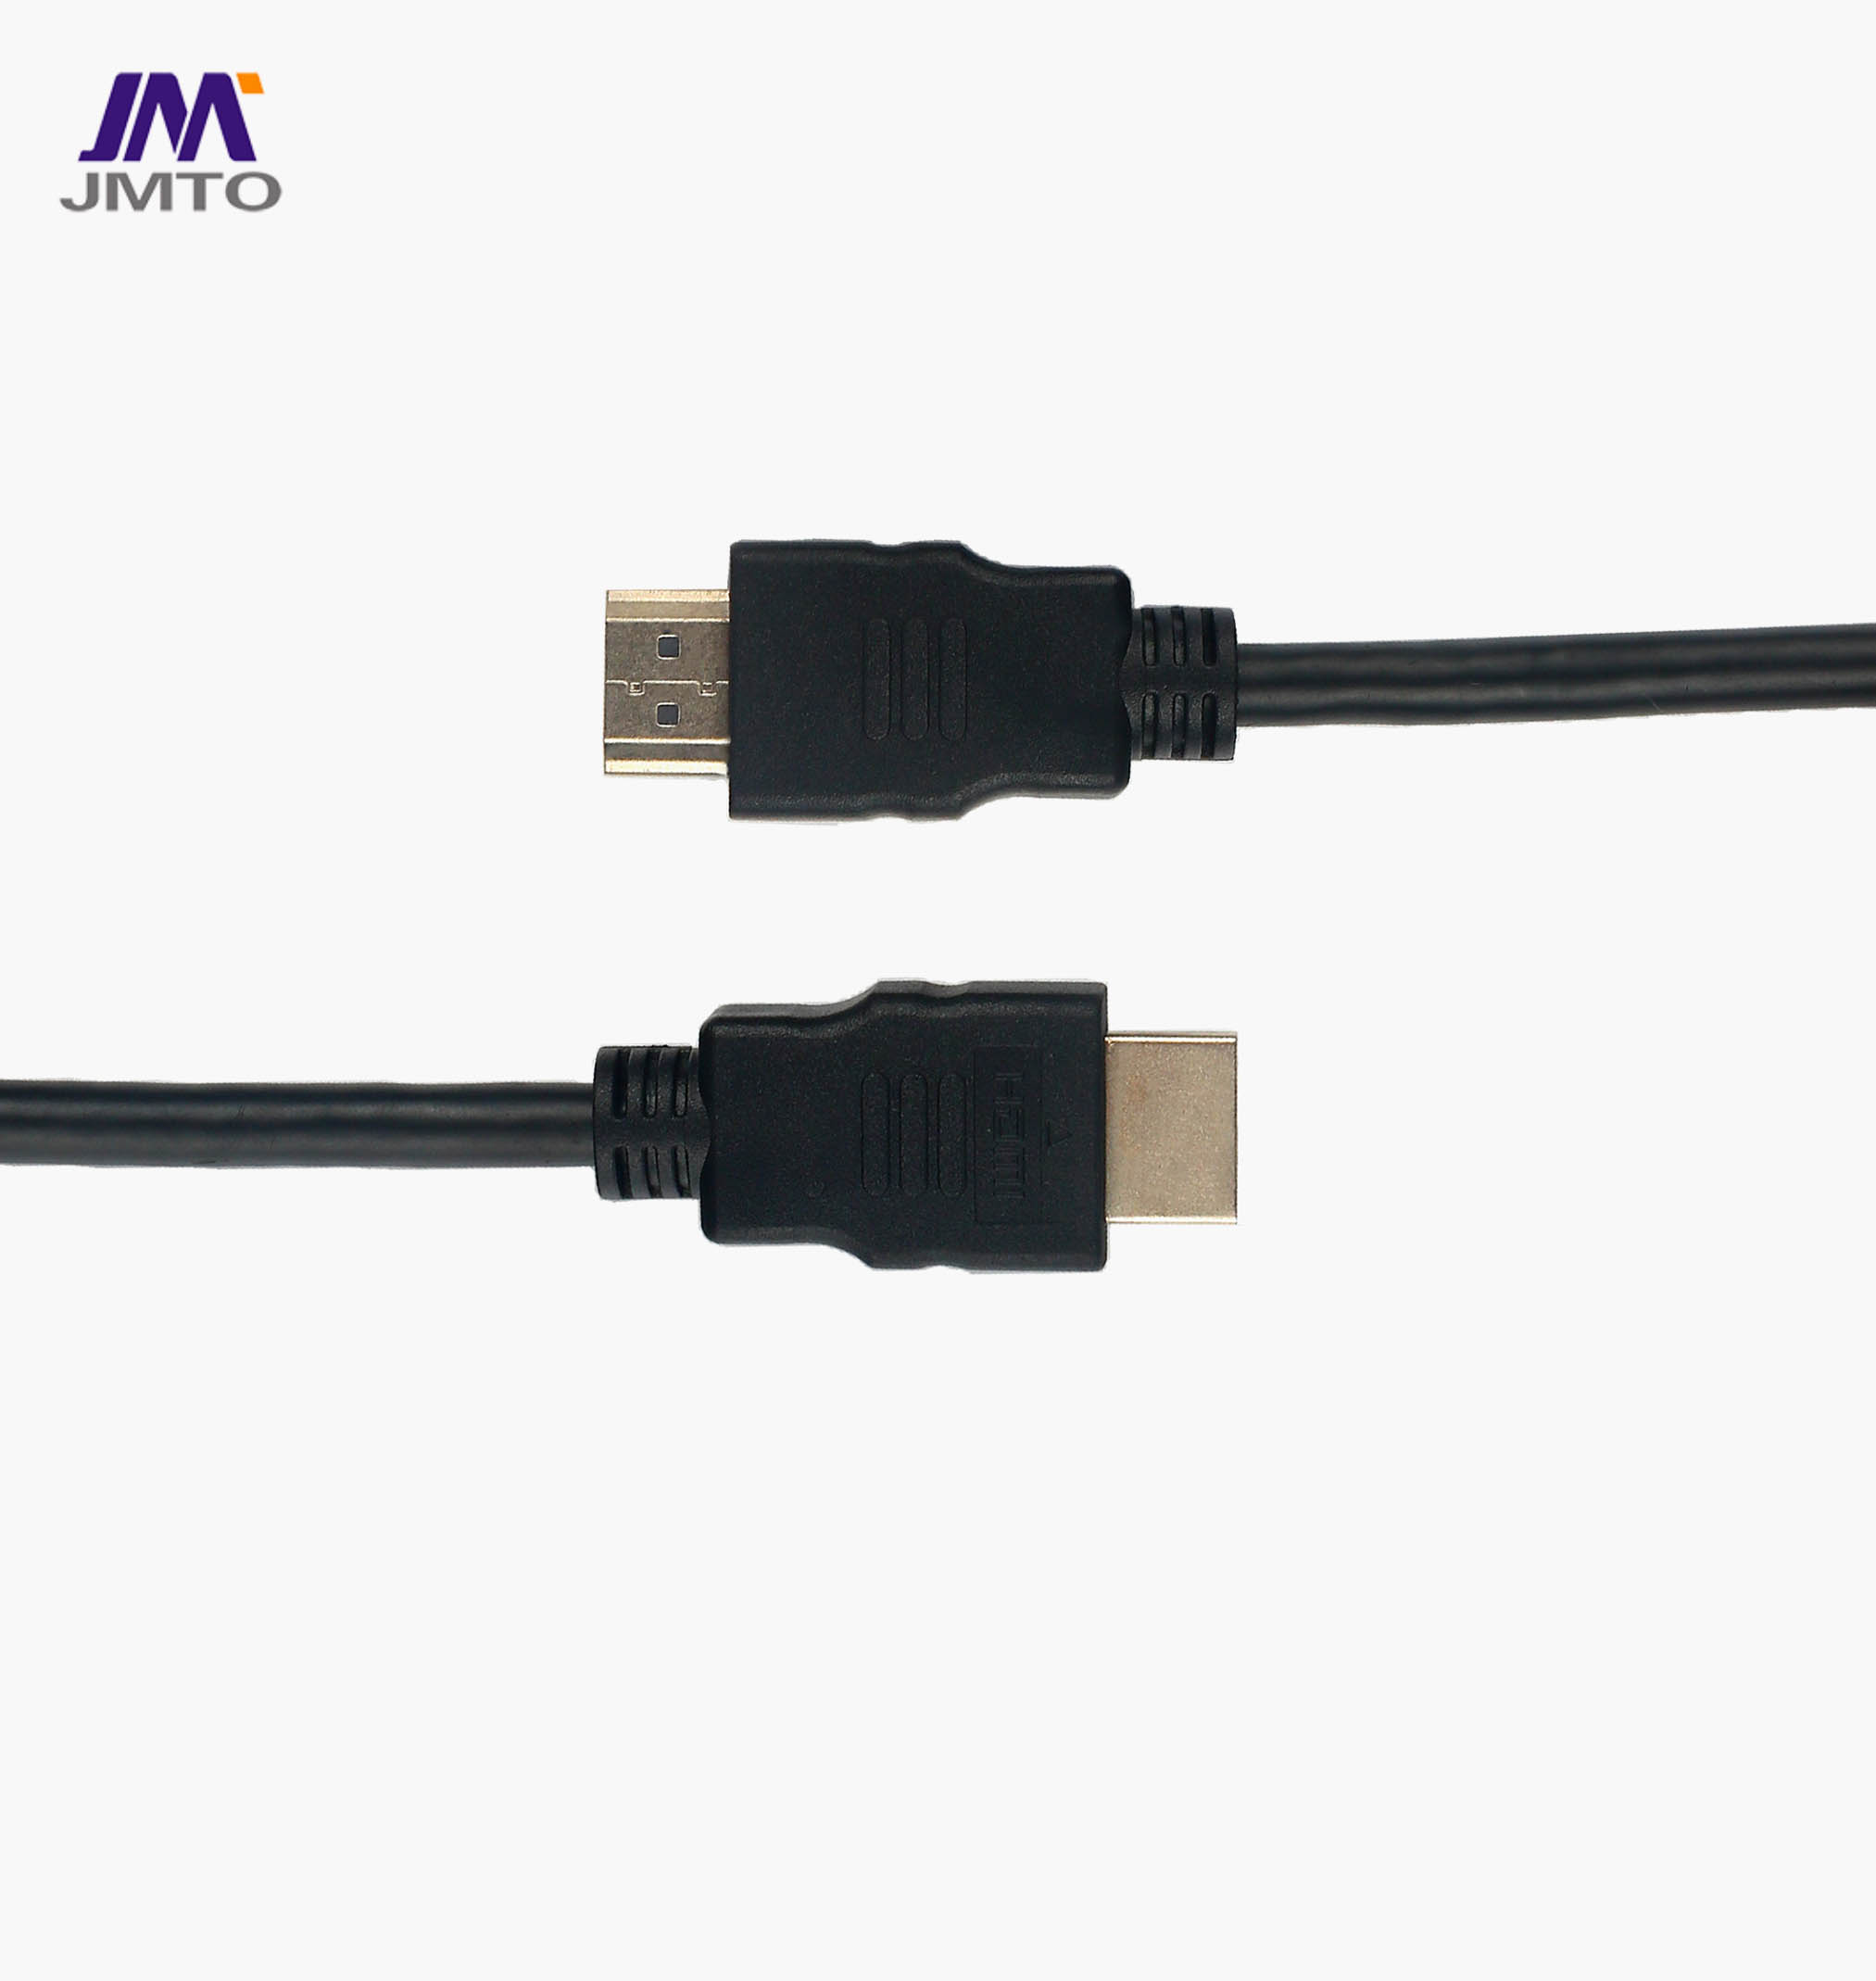 HDMI 2.0 A TO A Cable Bandwidth 18Gbps 4K @60HZ HDR,32 Channels. for TV